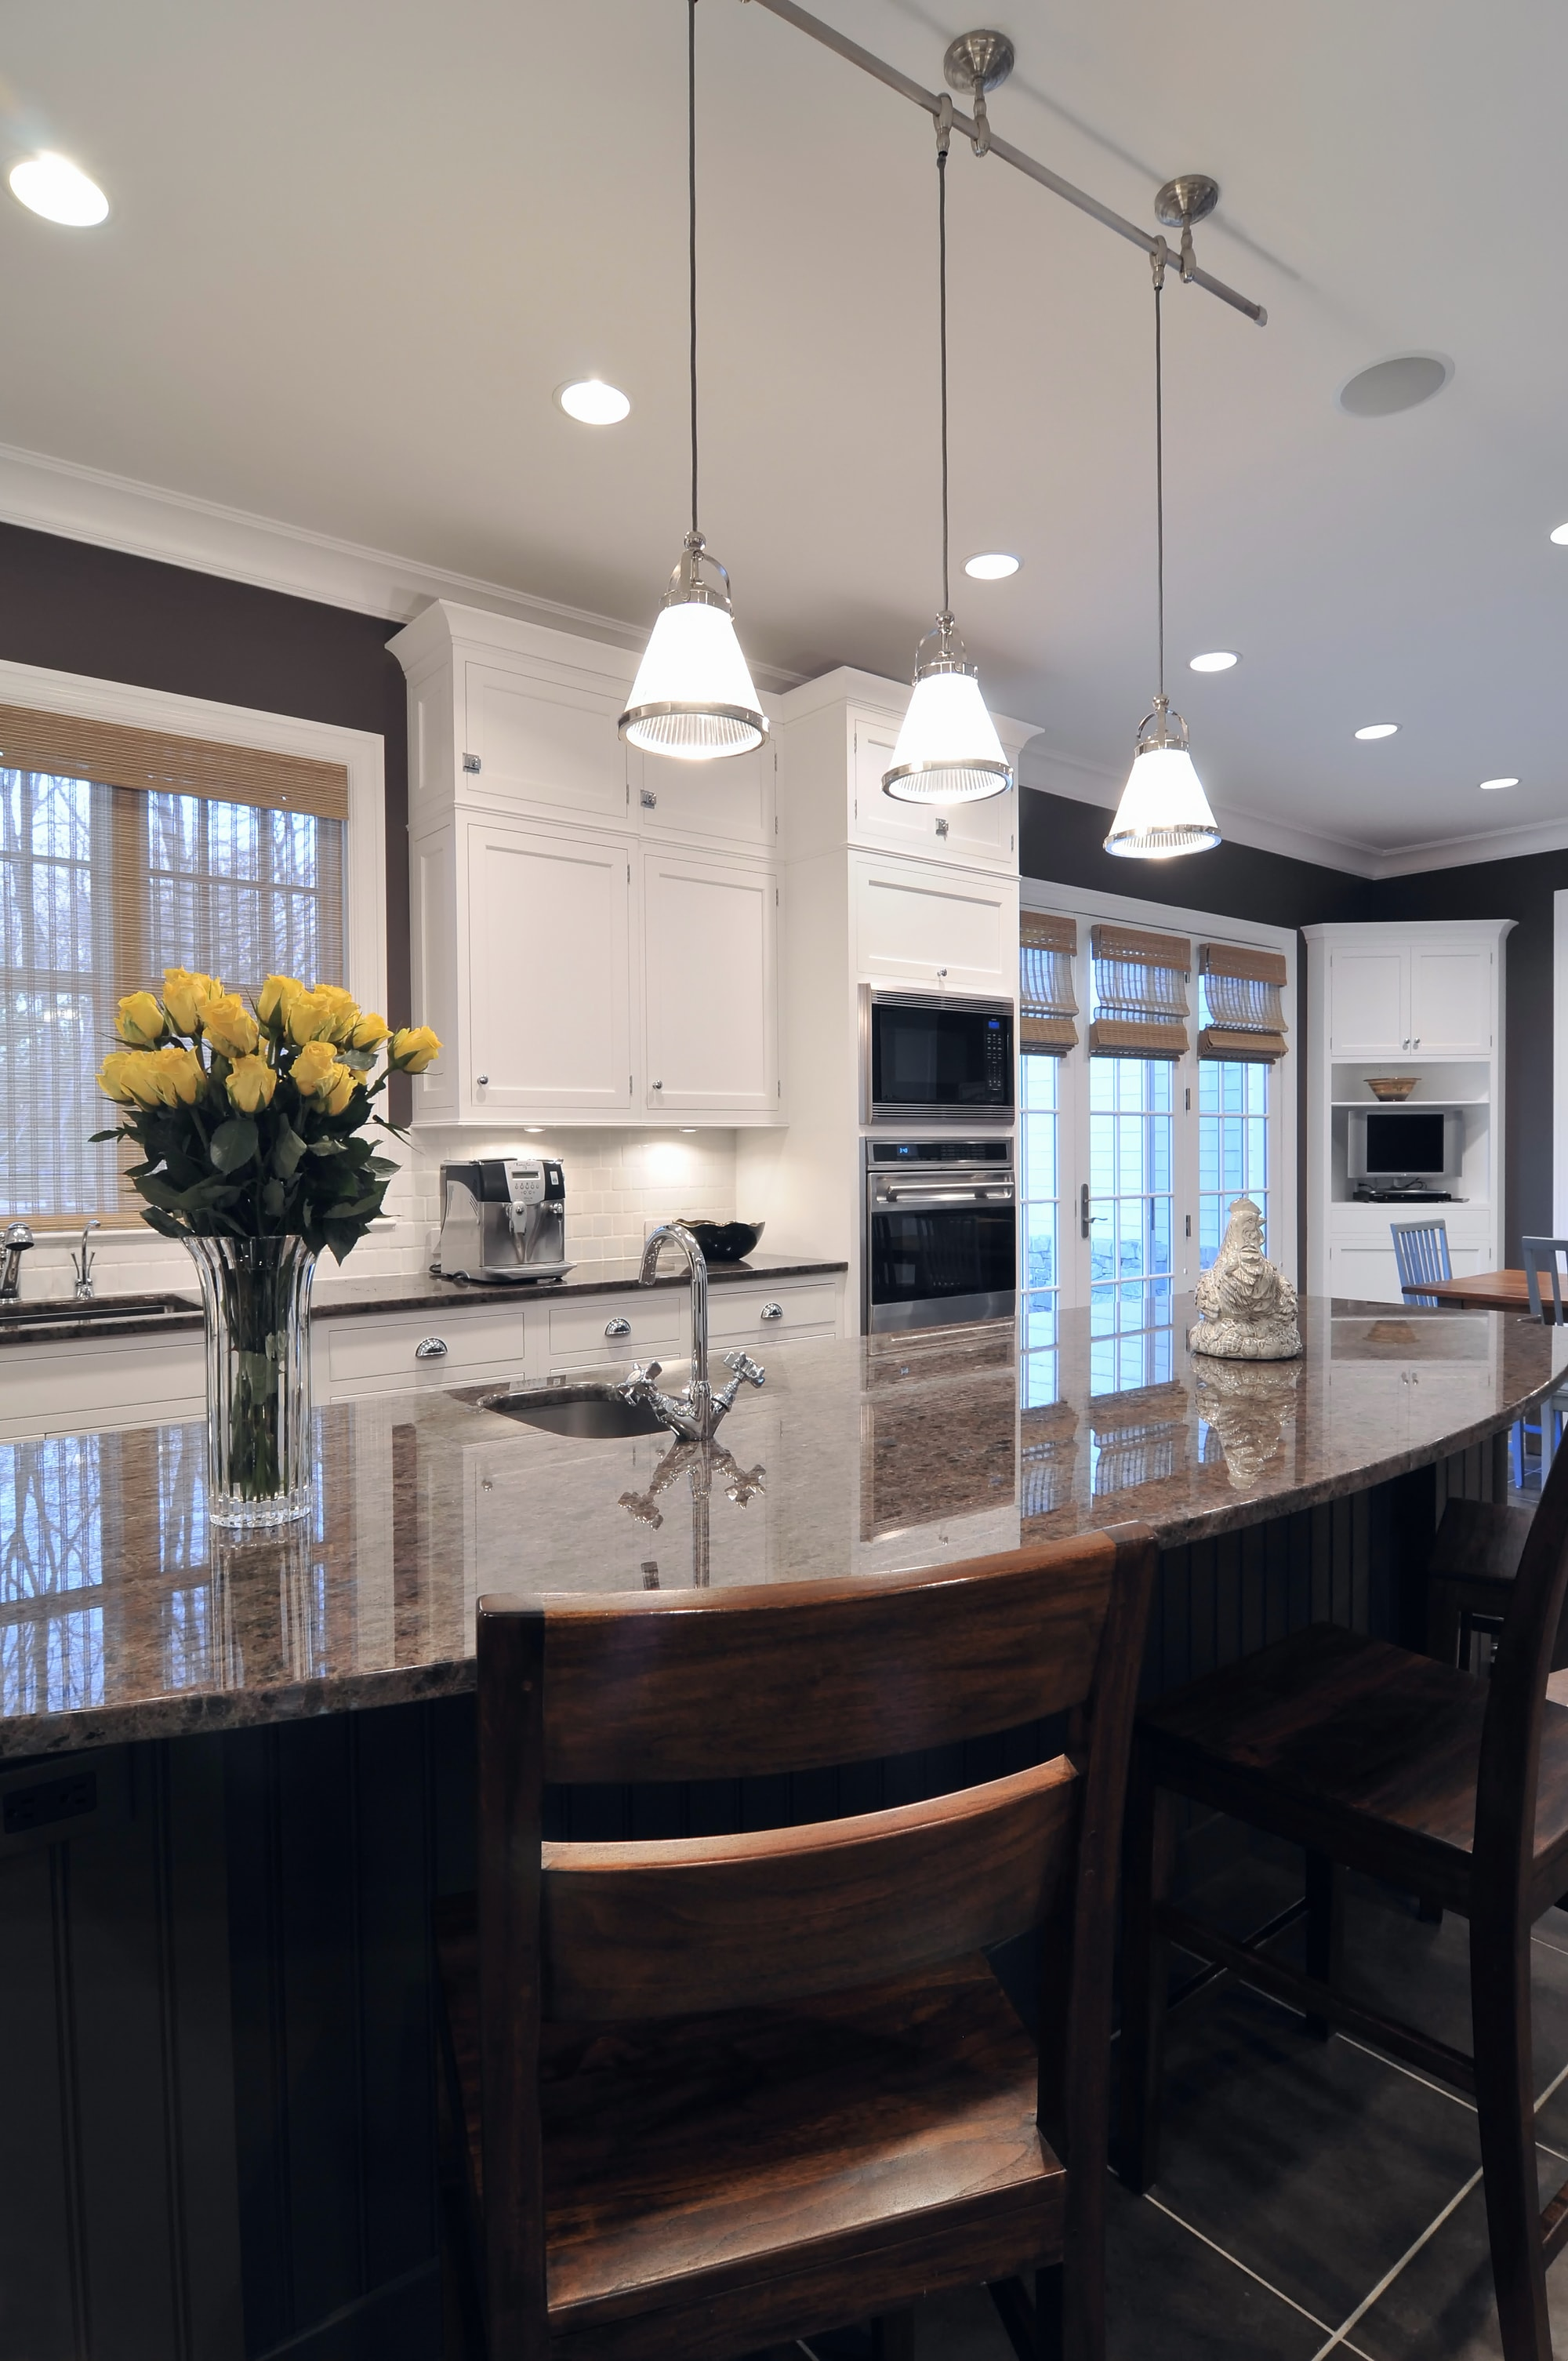 Traditional style kitchen with warm light setting